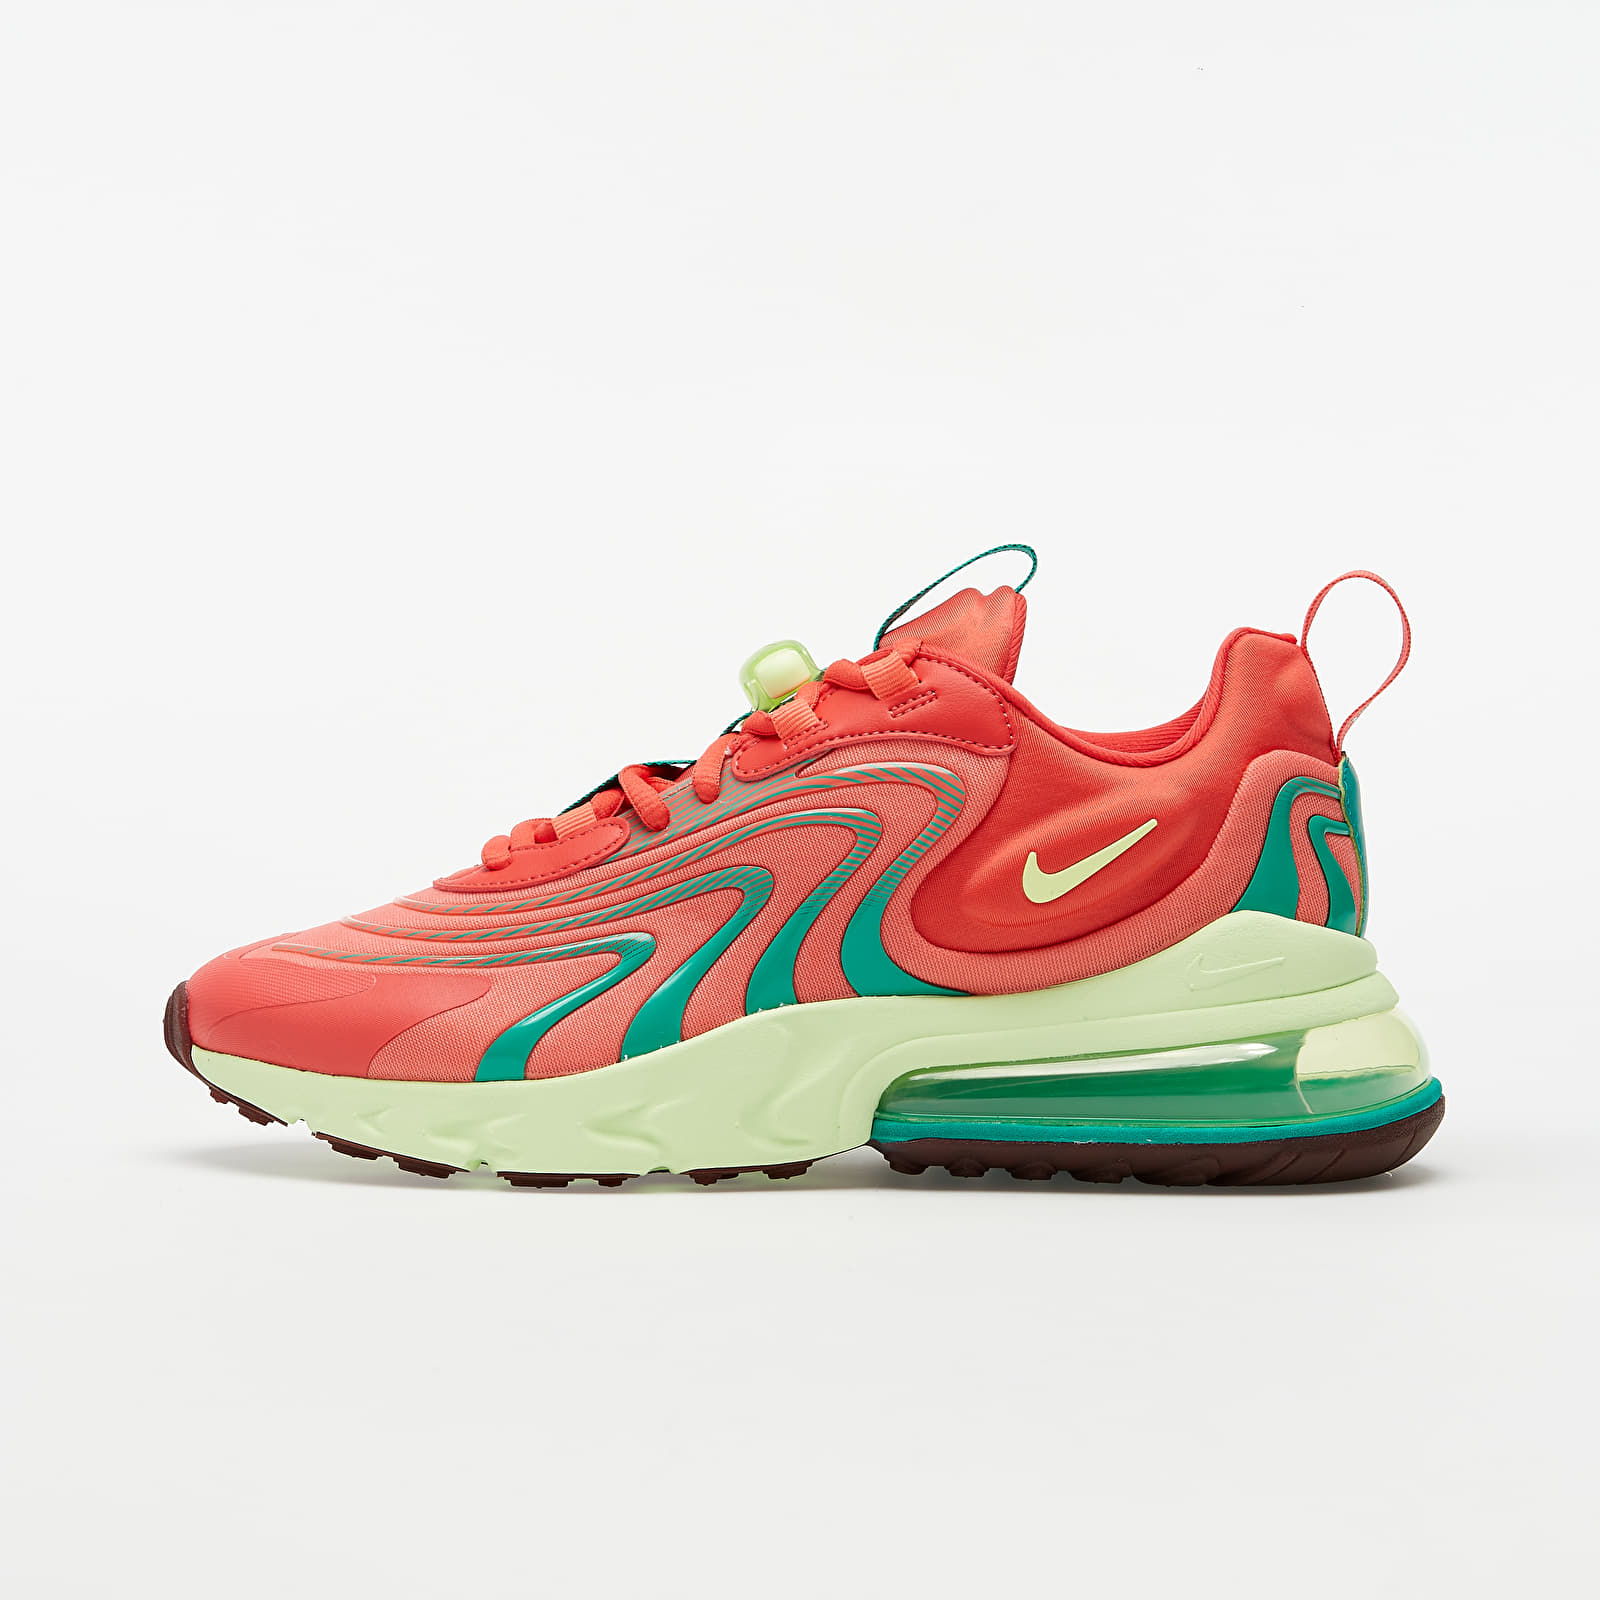 Nike Air Max 270 React ENG Track Red/ Barely Volt-Magic Ember   Footshop